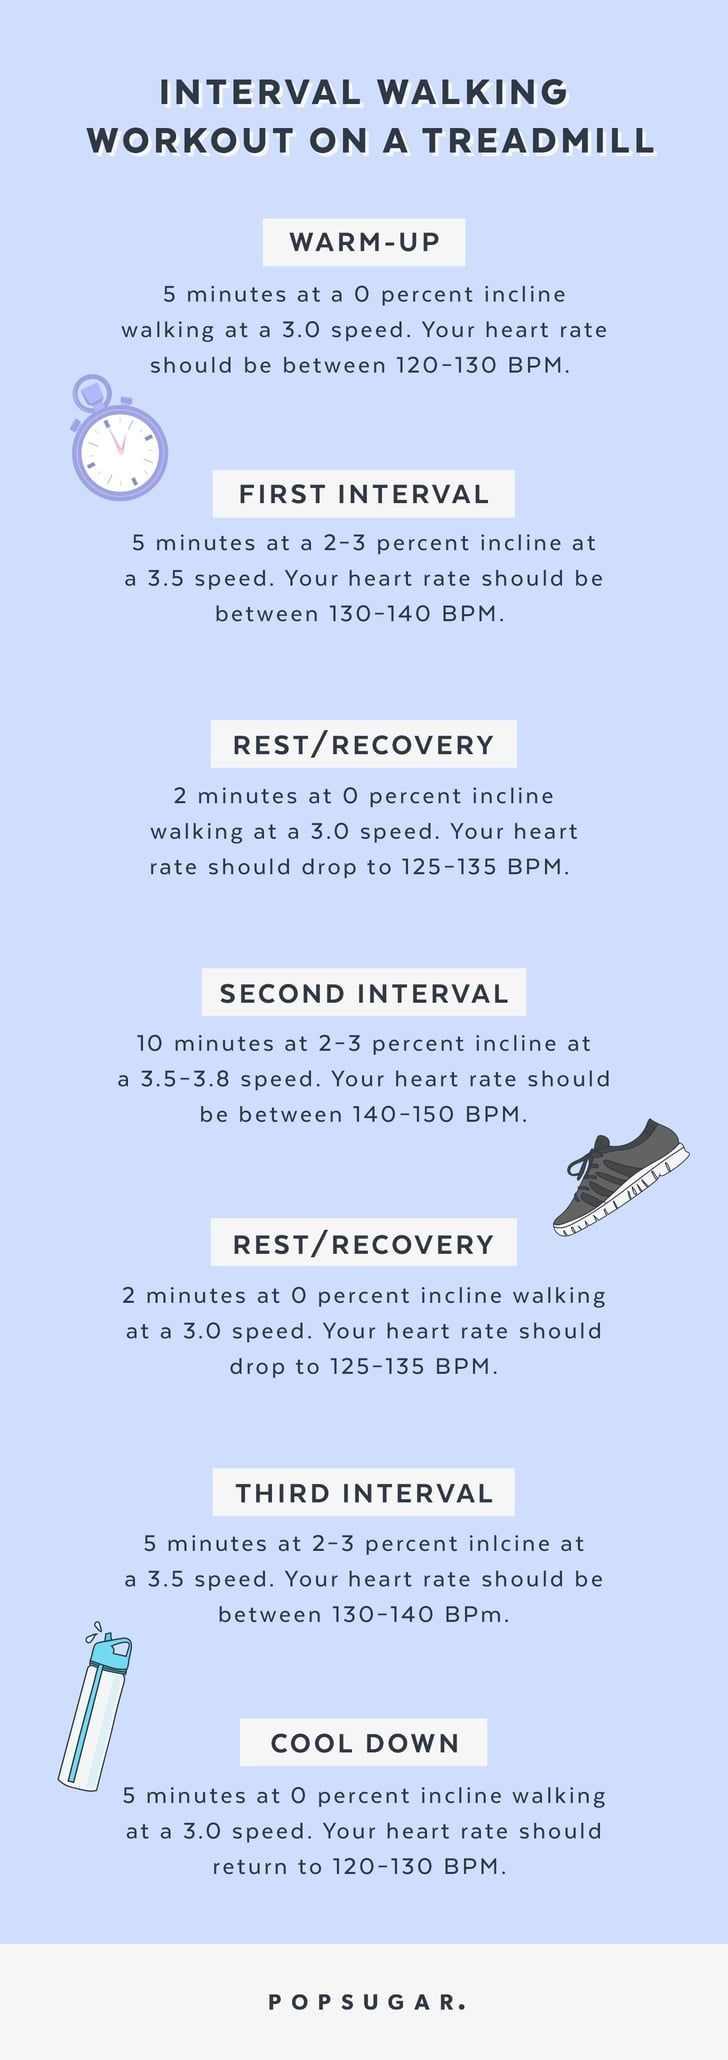 A 34-Minute Interval Walking Treadmill Workout Thatll Actually Help You Lose Weight